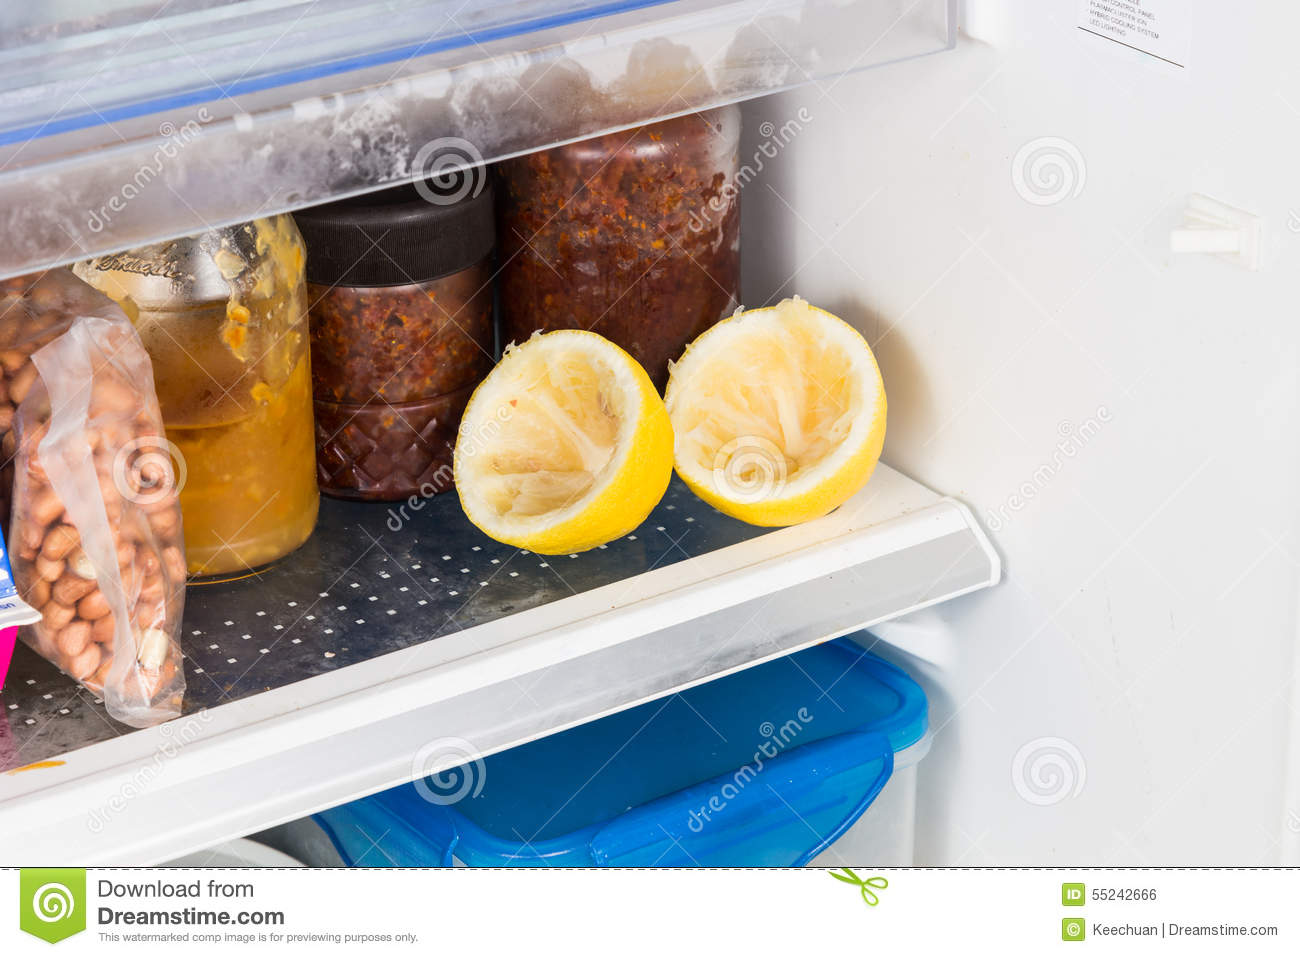 Spent lemons recycled in refrigerator to deodorize bad smell